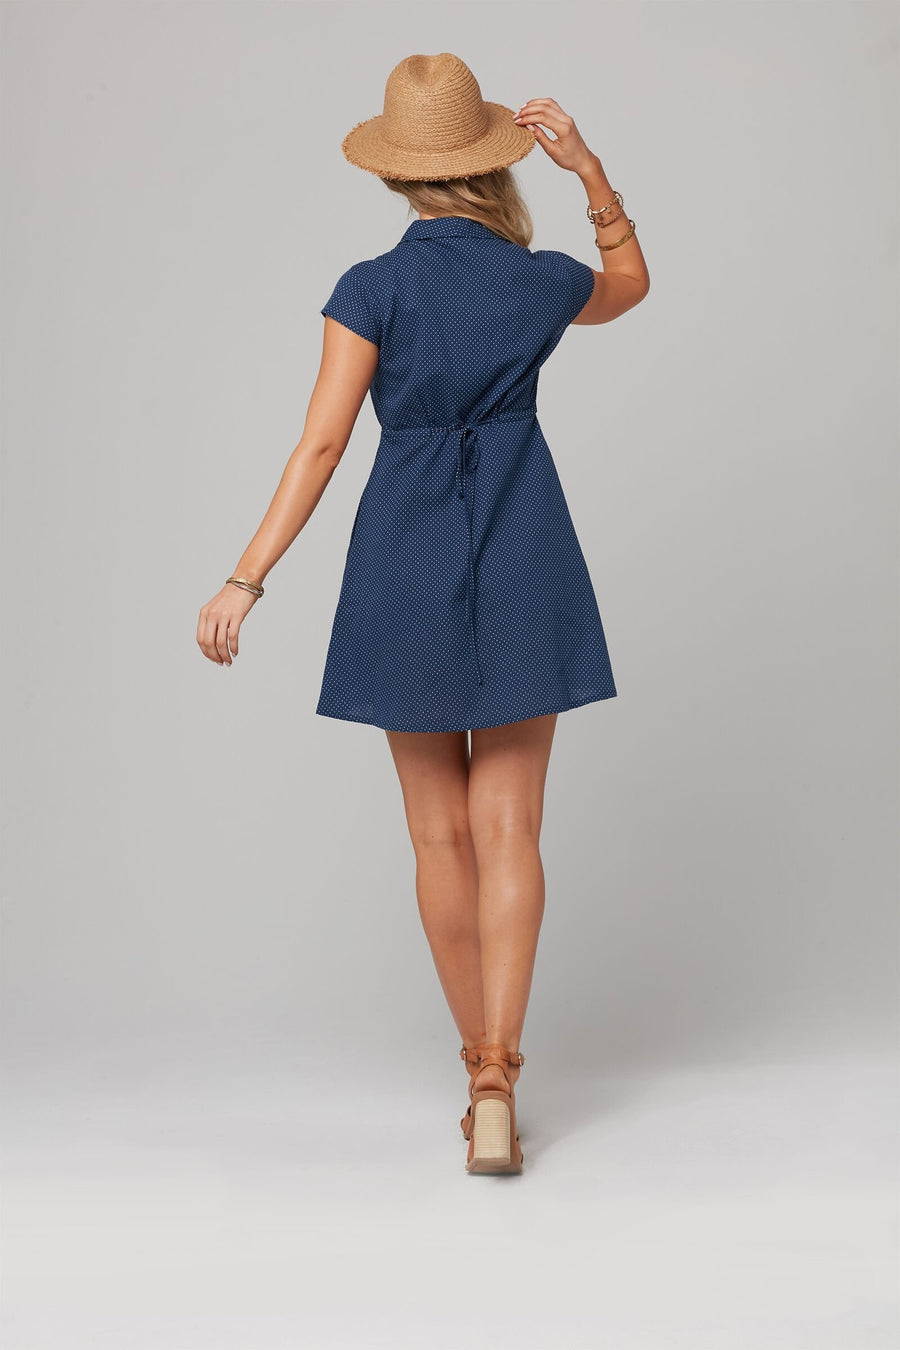 ELLEN DRESS-Navy Dot